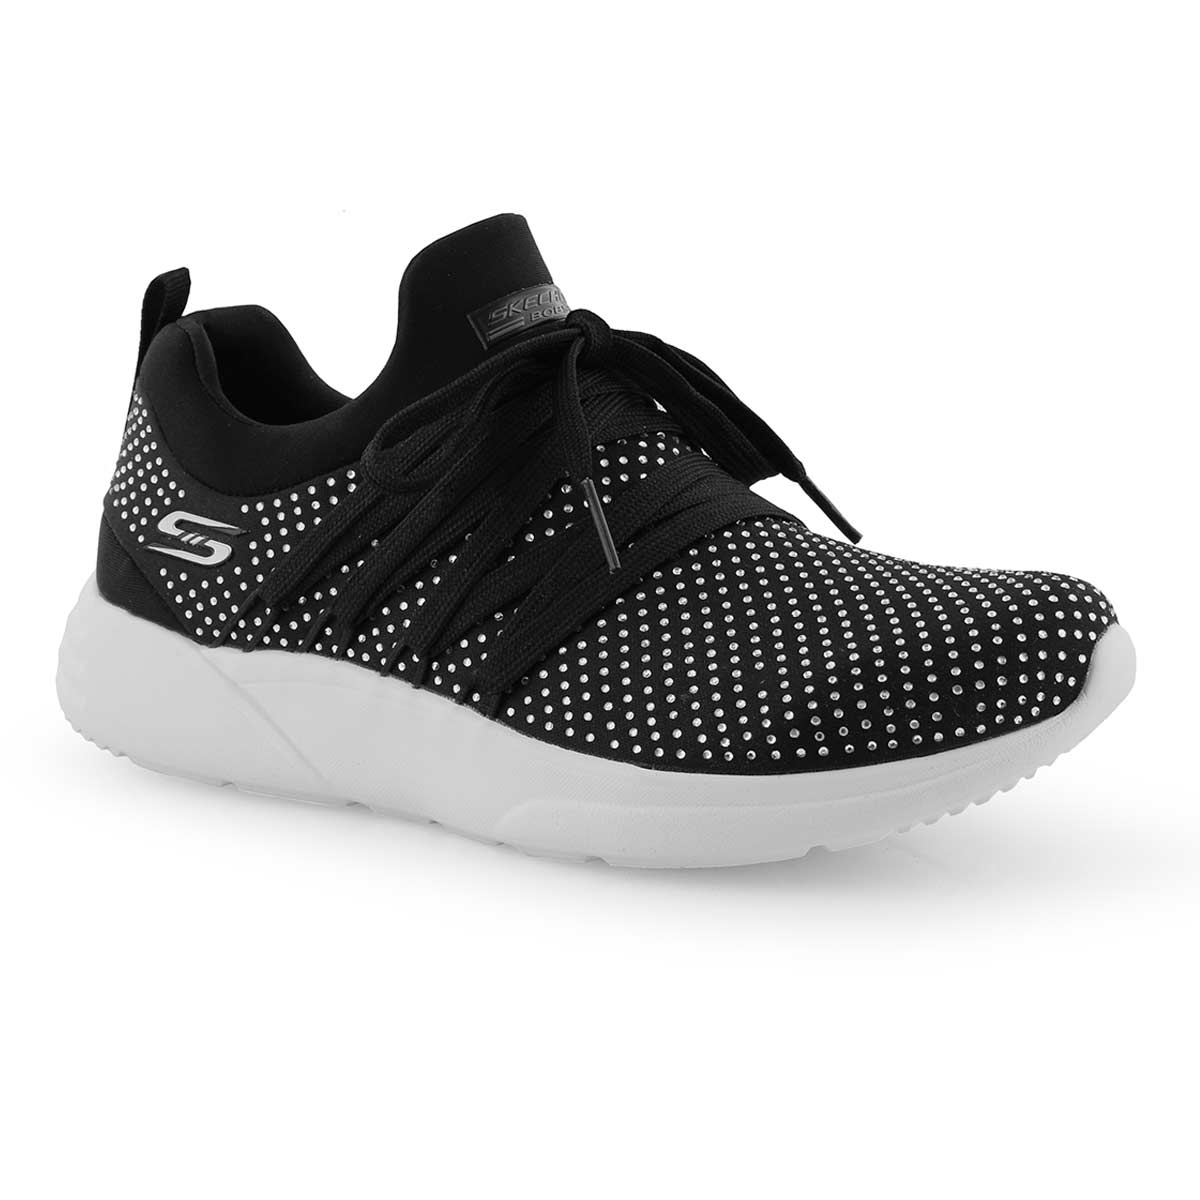 Lds Bobs Sparrow black lace up sneaker